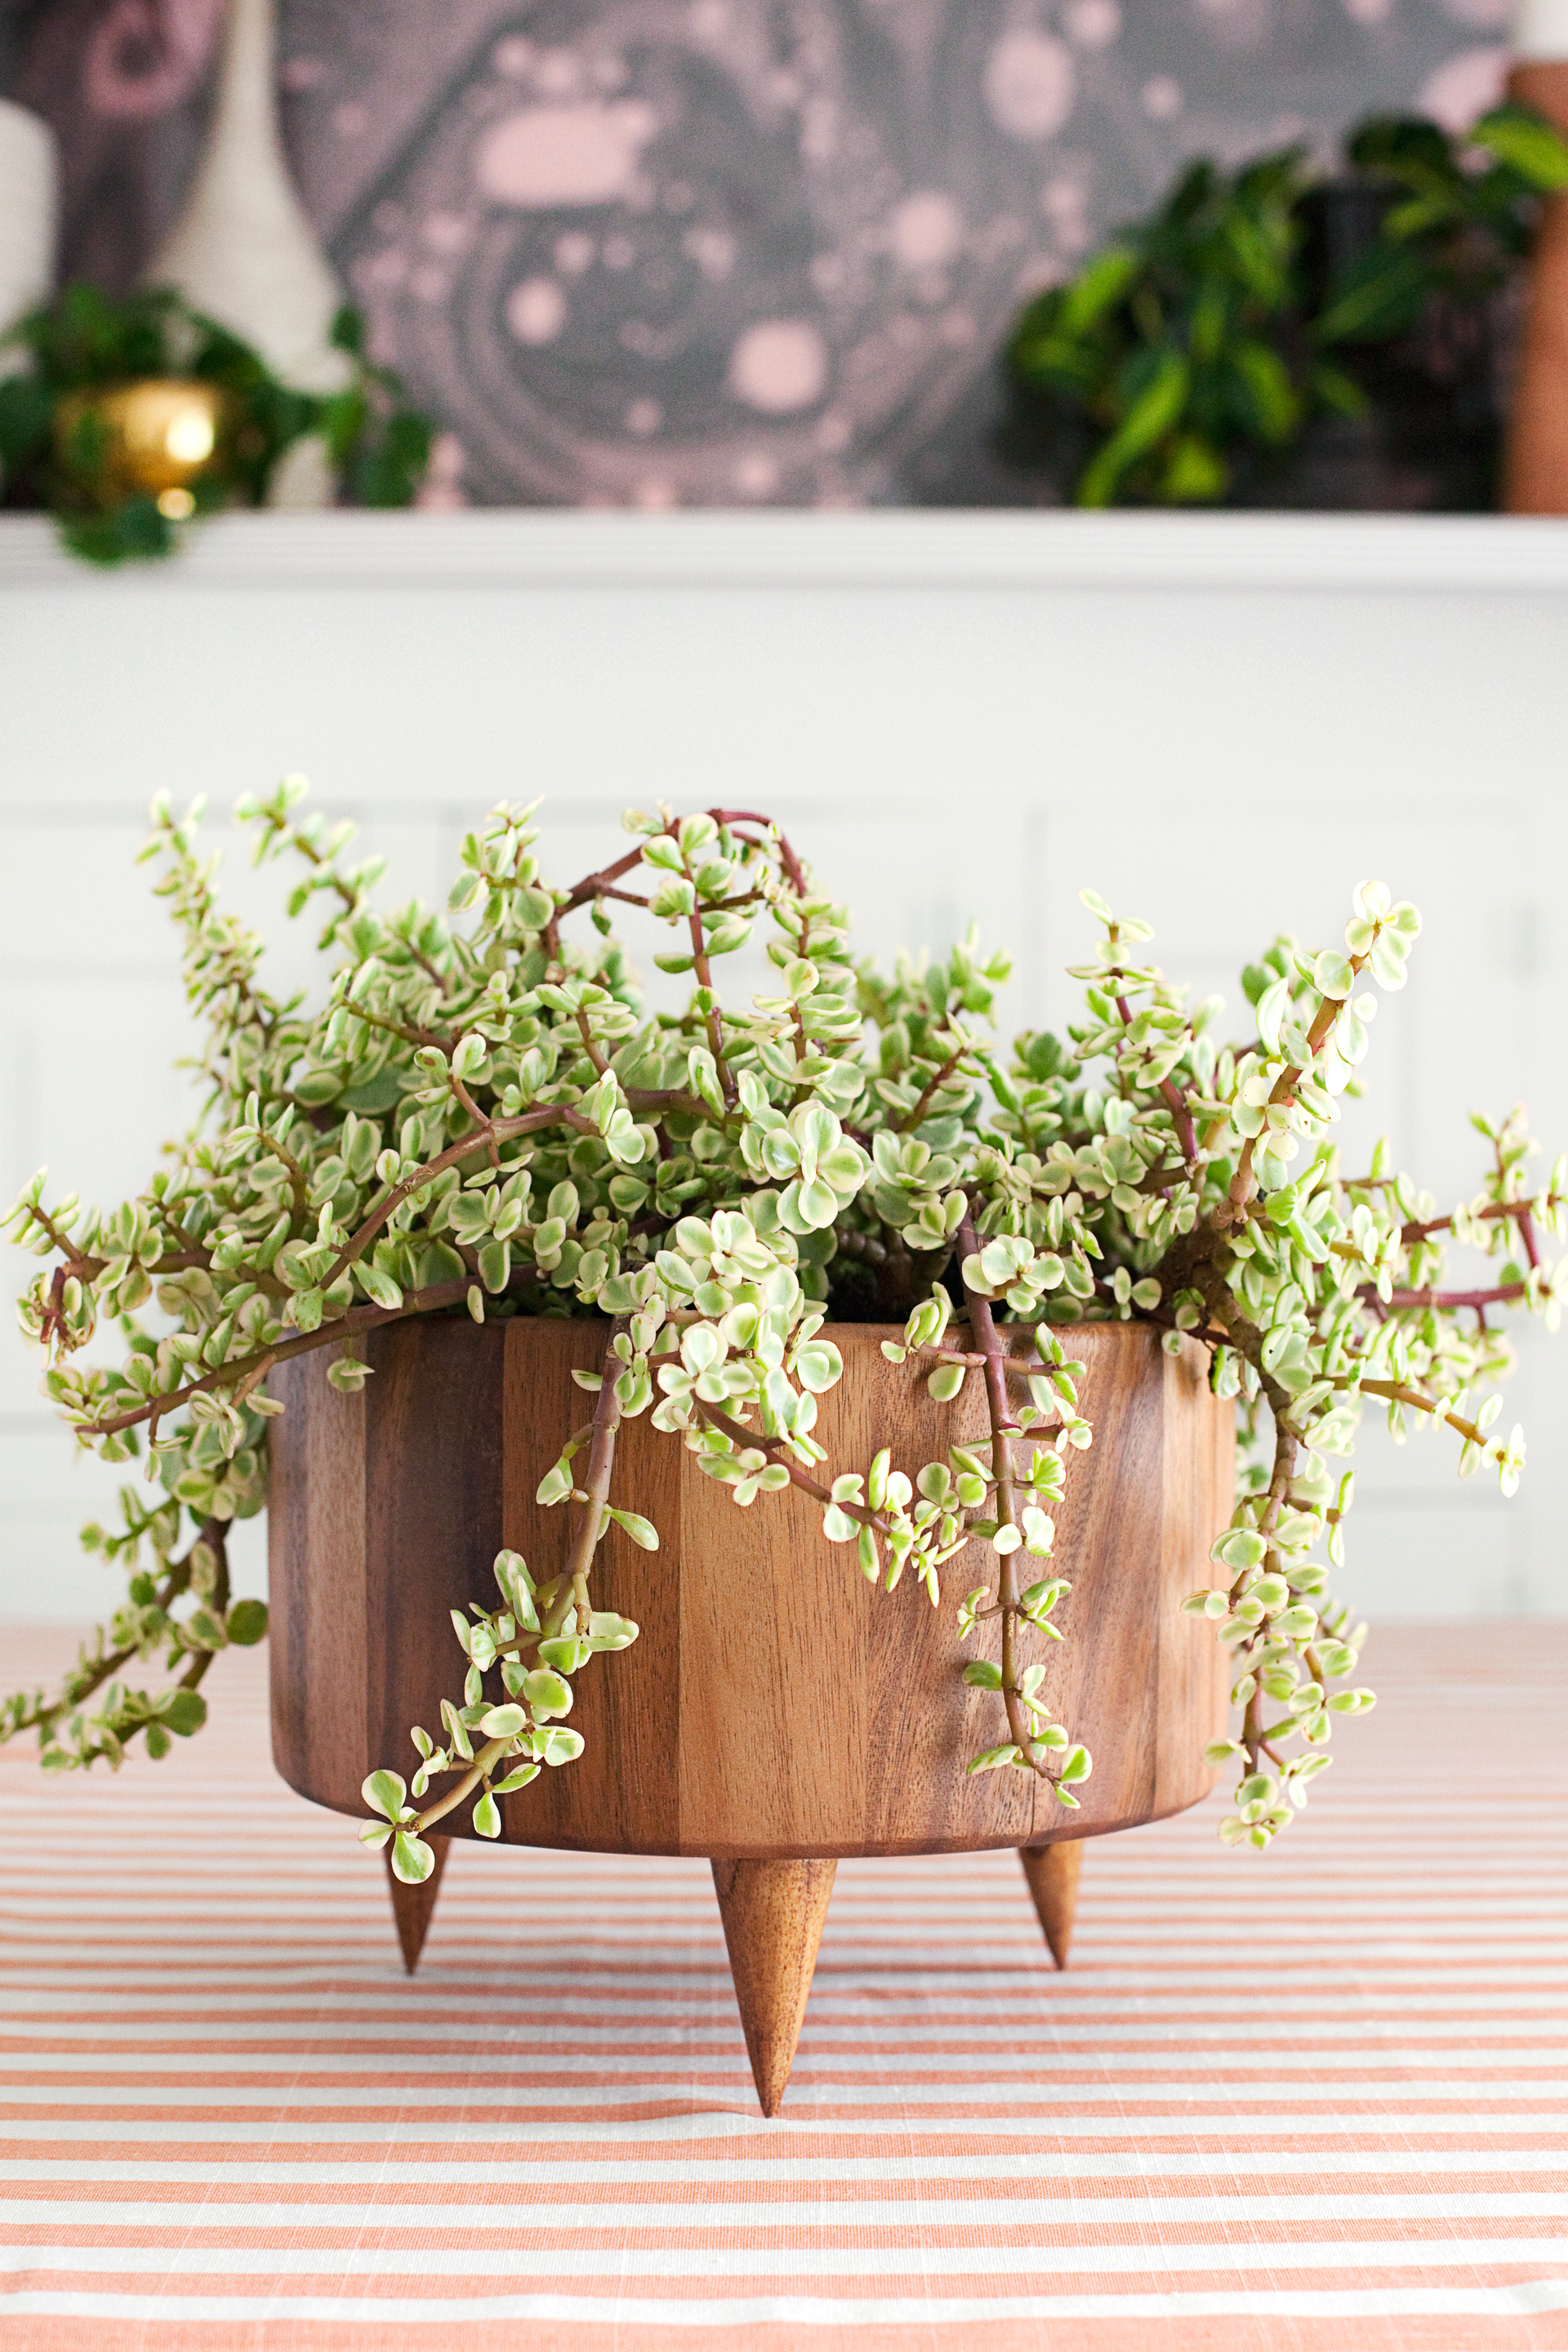 These thrift store salad bowls make perfect planters and centerpieces.